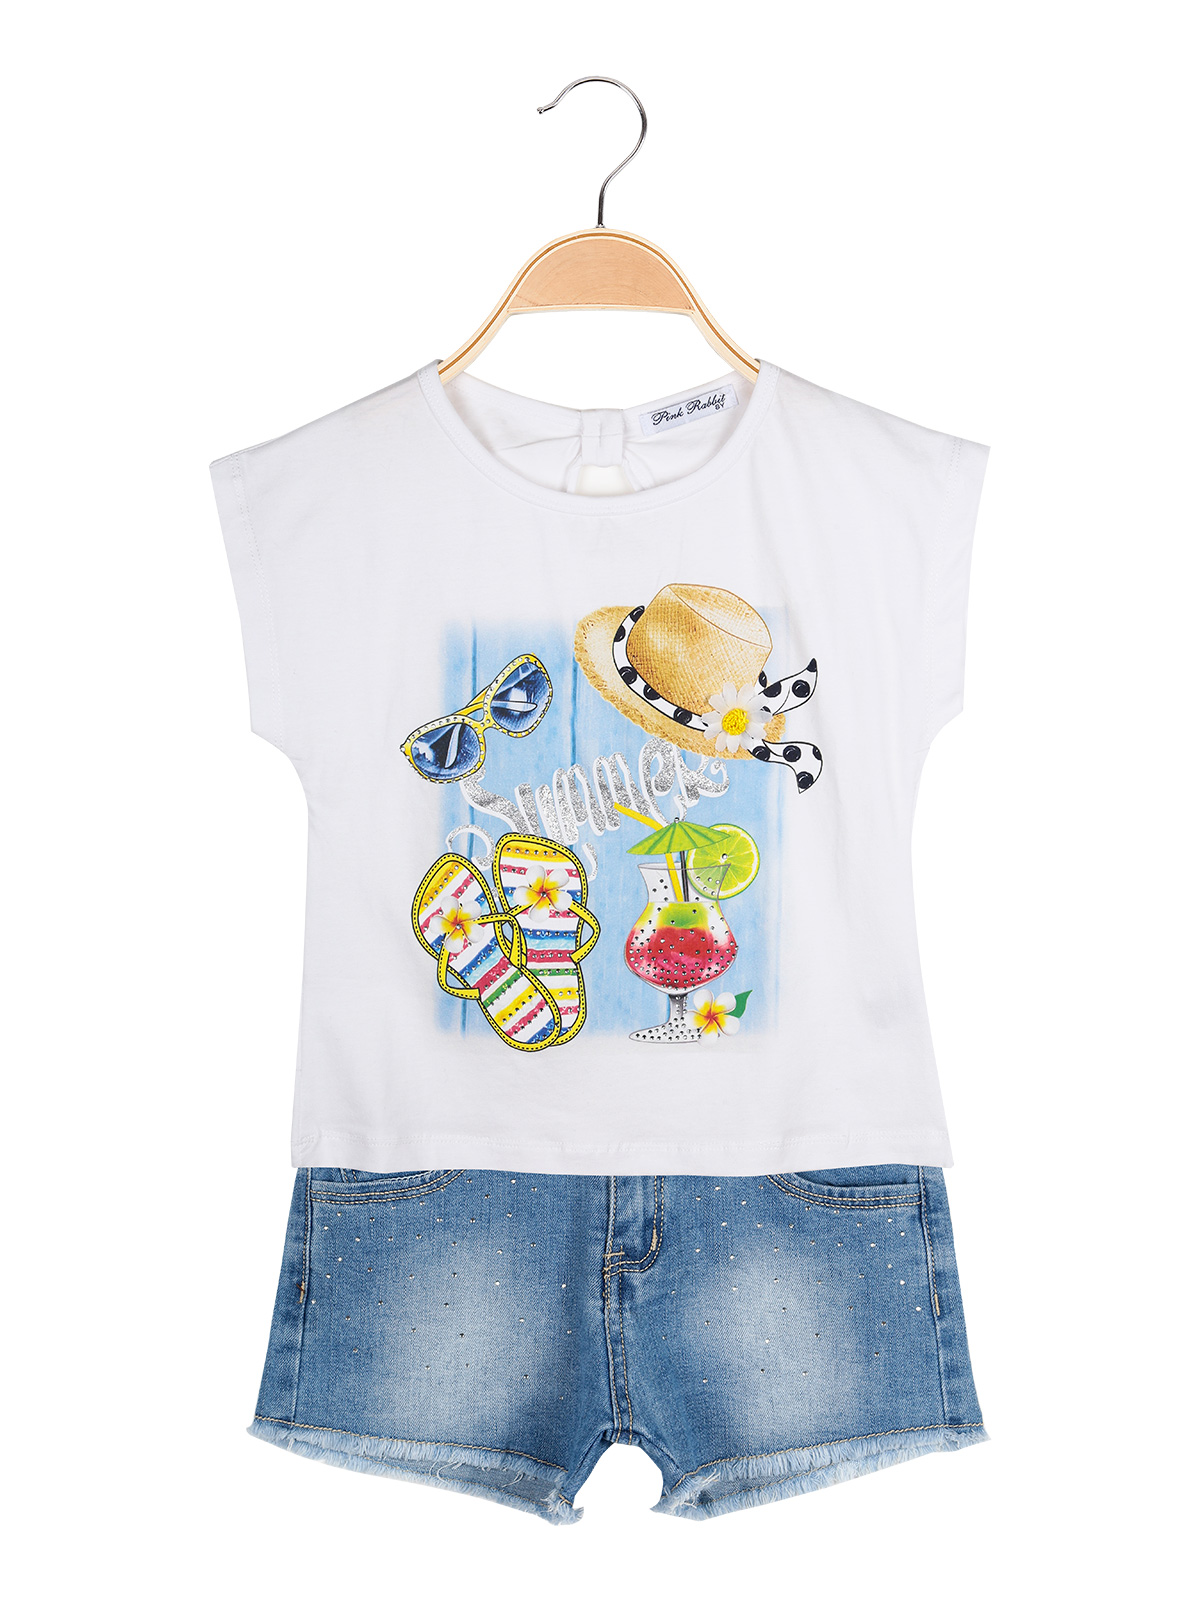 Print T-shirt + Shorts Jeans-full 2 Pieces Baby Girl